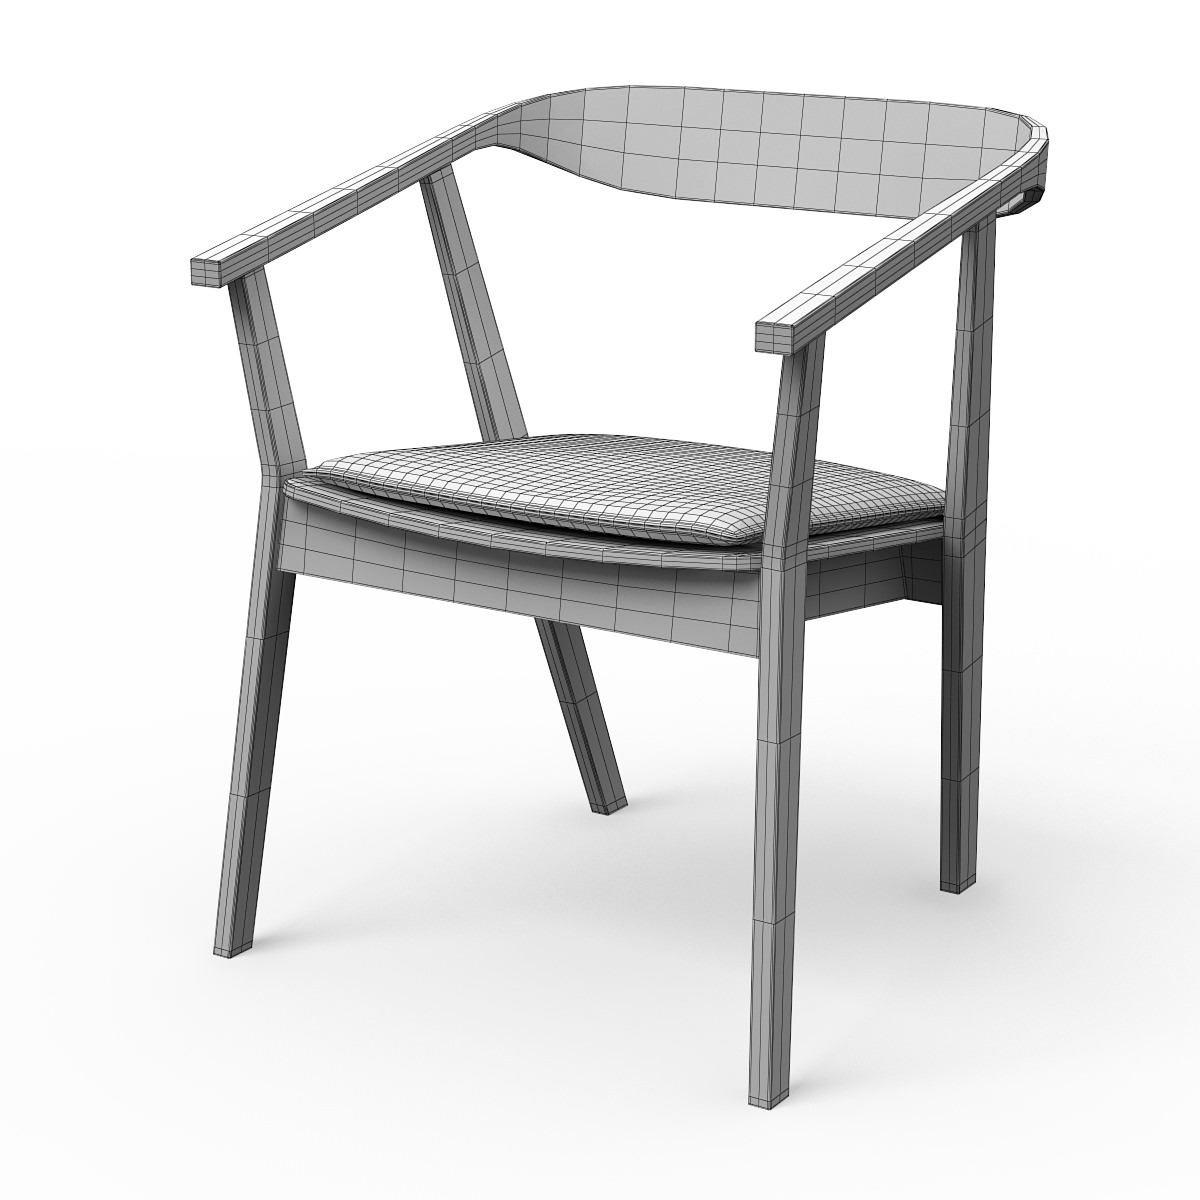 STOCKHOLM Dining chair with chair pad 3D Model max obj  : stockholmdiningchairwithchairpad3dmodel3dsfbxobjmaxe94fa8eb 0e27 4632 aa70 9e849ca749ec from cgtrader.com size 1200 x 1200 jpeg 129kB